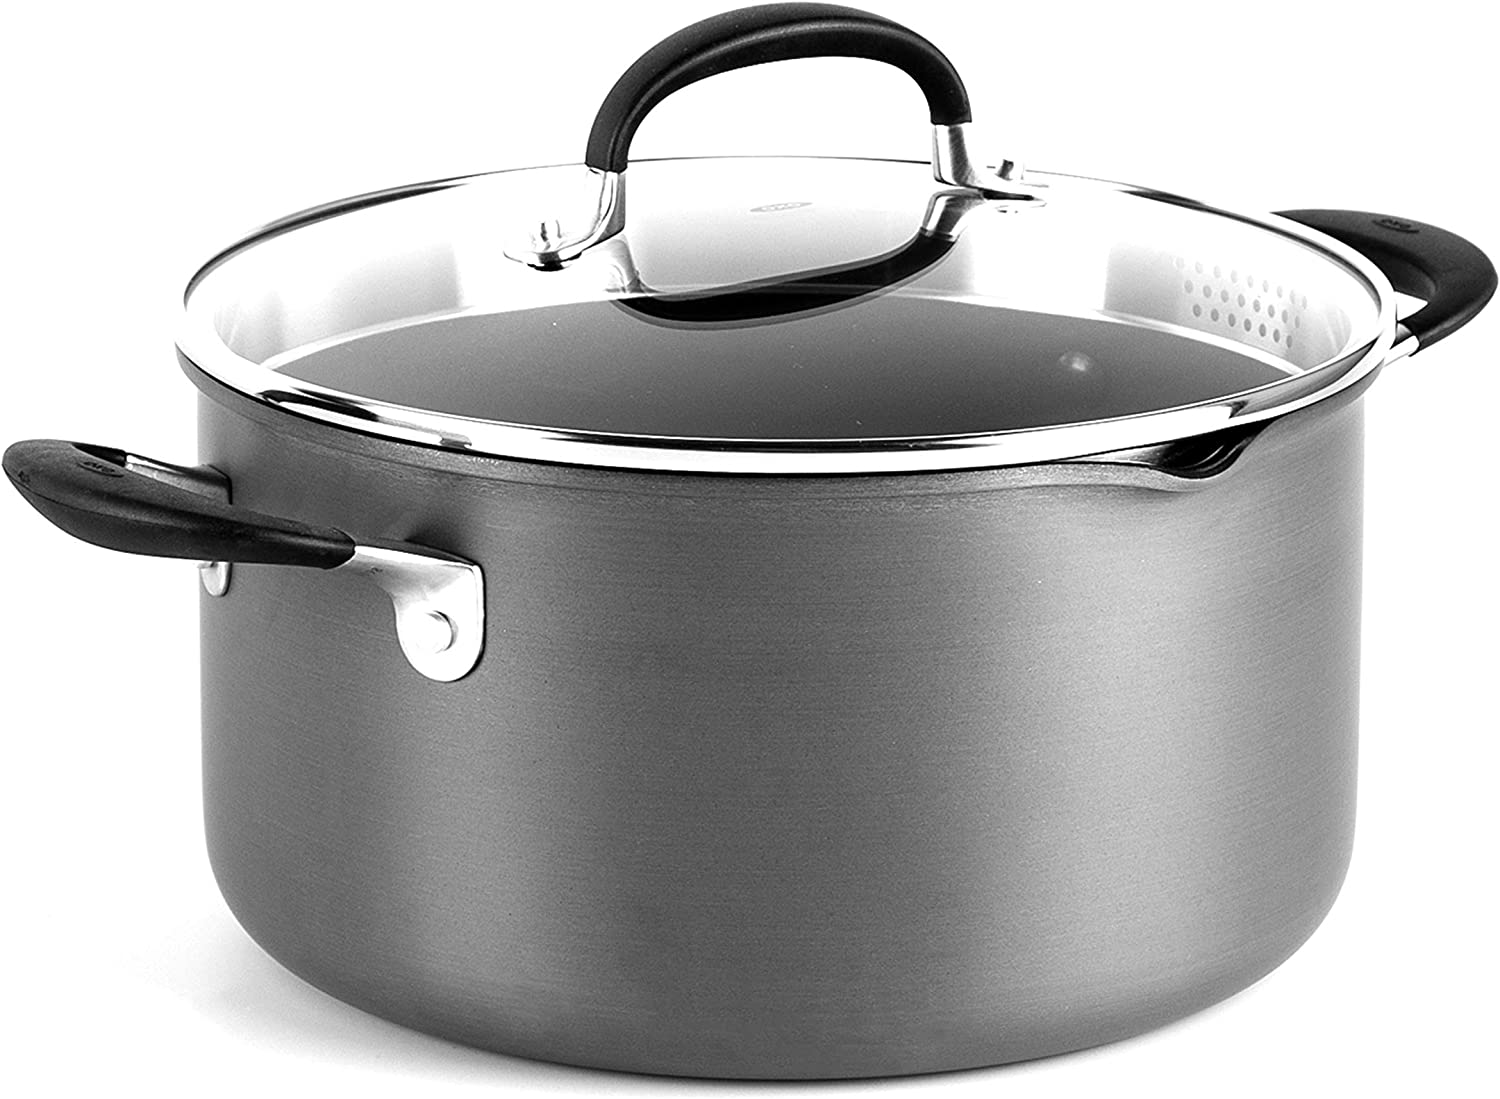 OXO Good Grips 6QT, Stockpot Black